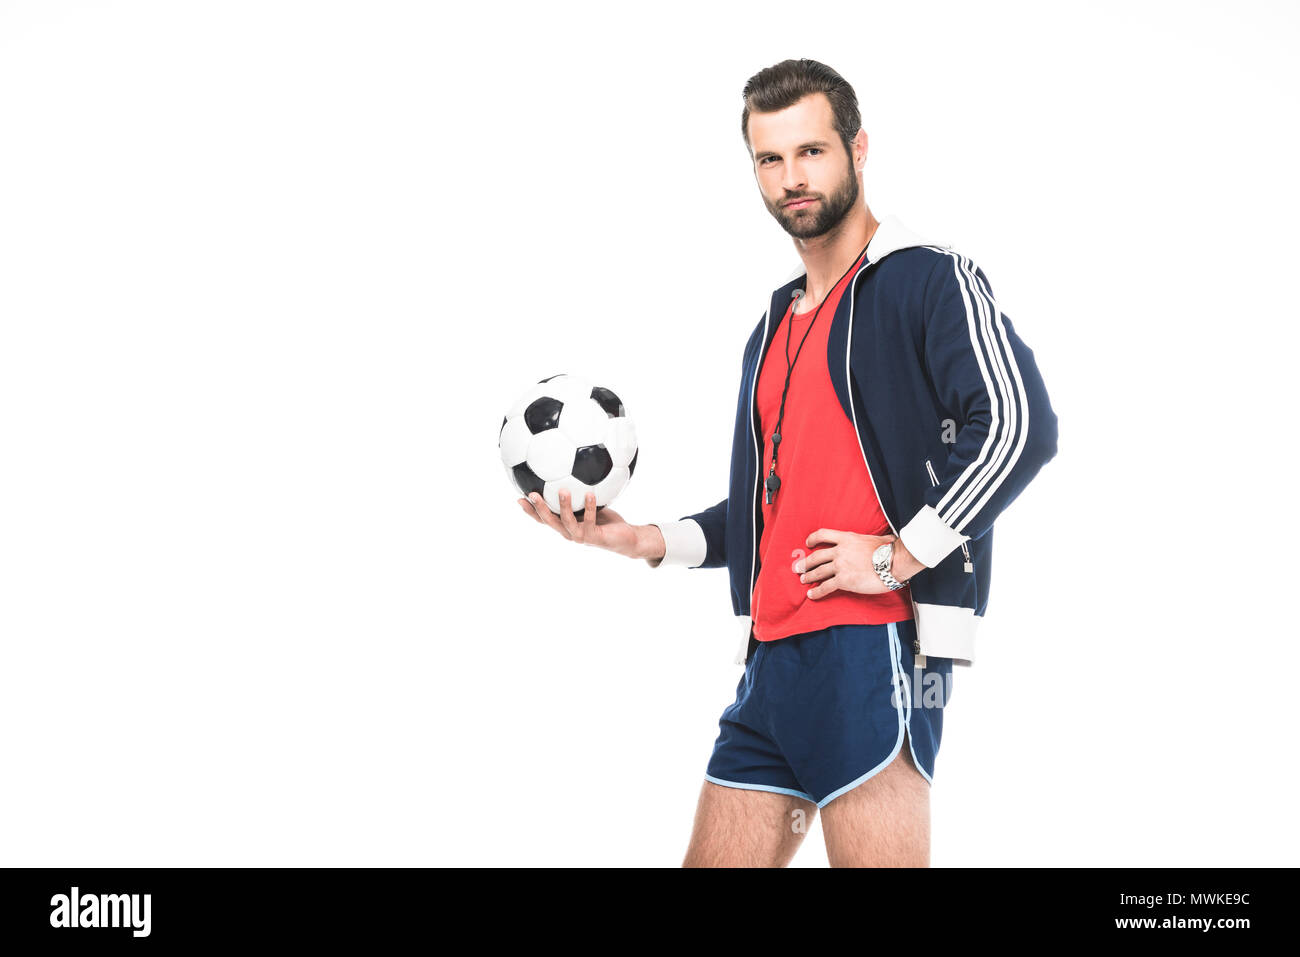 cf4d79bc4 bearded soccer trainer holding ball, isolated on white - Stock Image